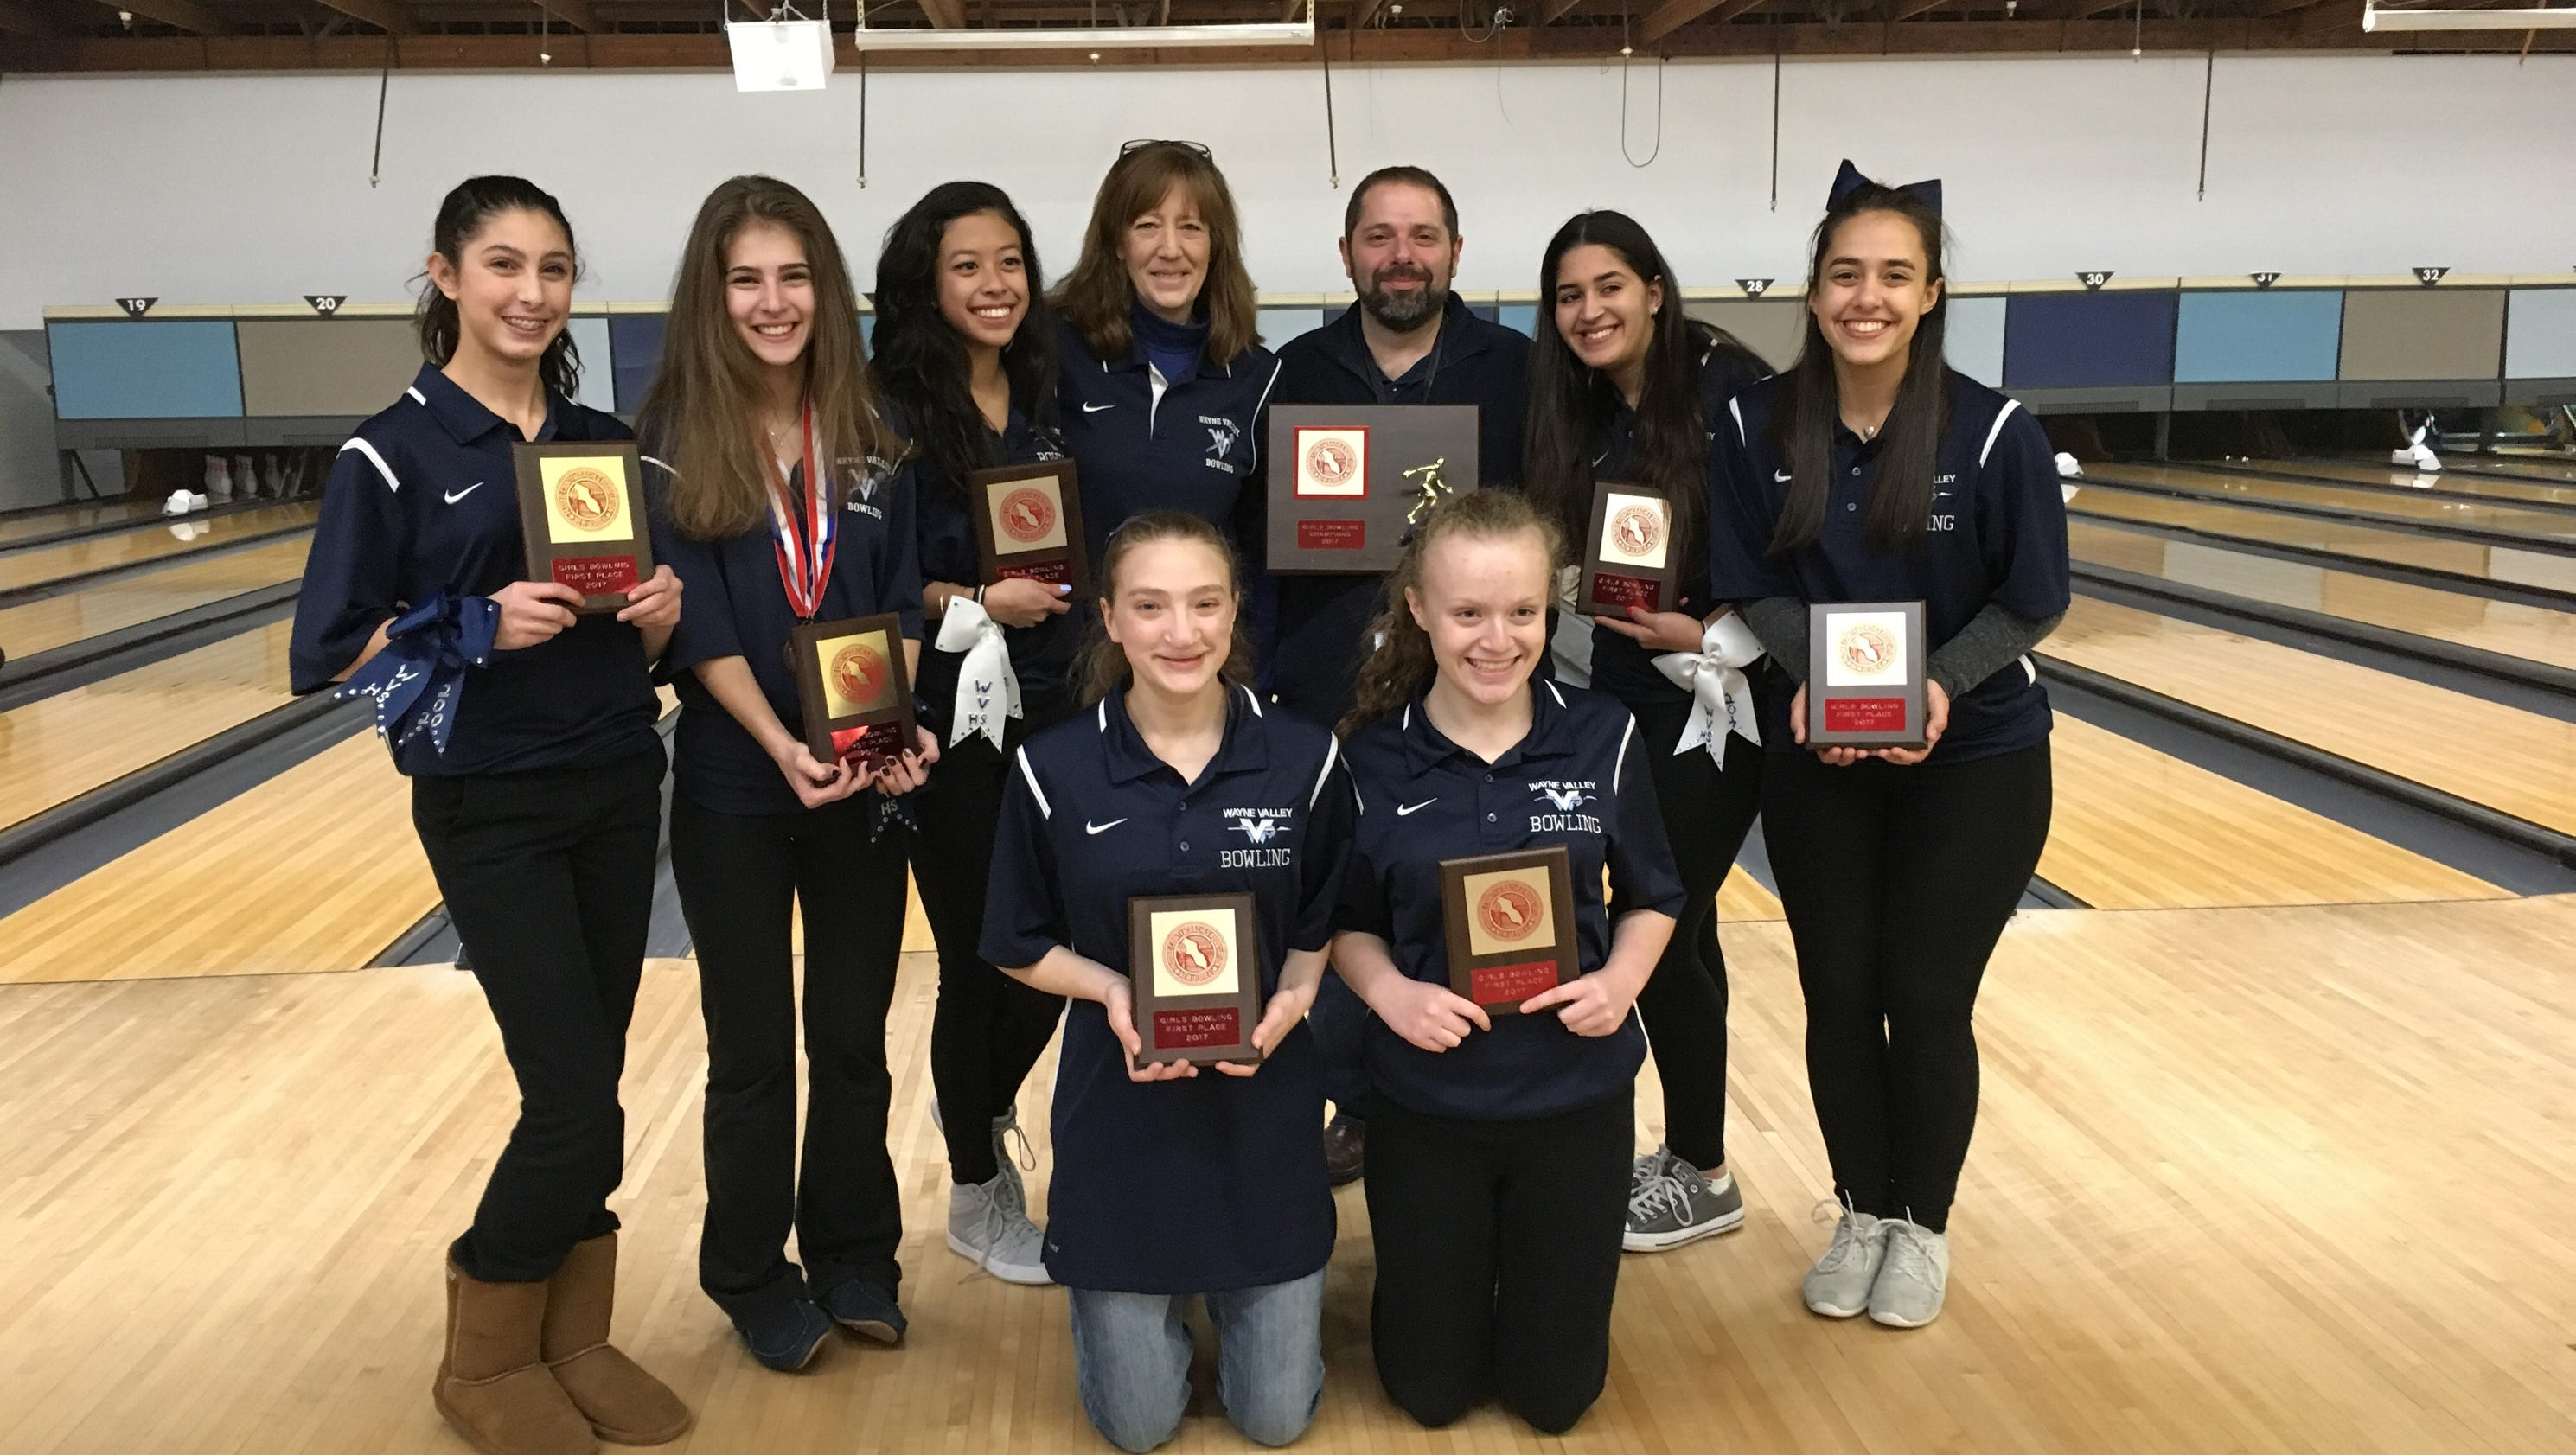 passaic girls Little falls, nj - team white won the night, taking home the flag for cheer, exercise, relays and novelties while team green took the flag for dance and posters at passaic valley high.